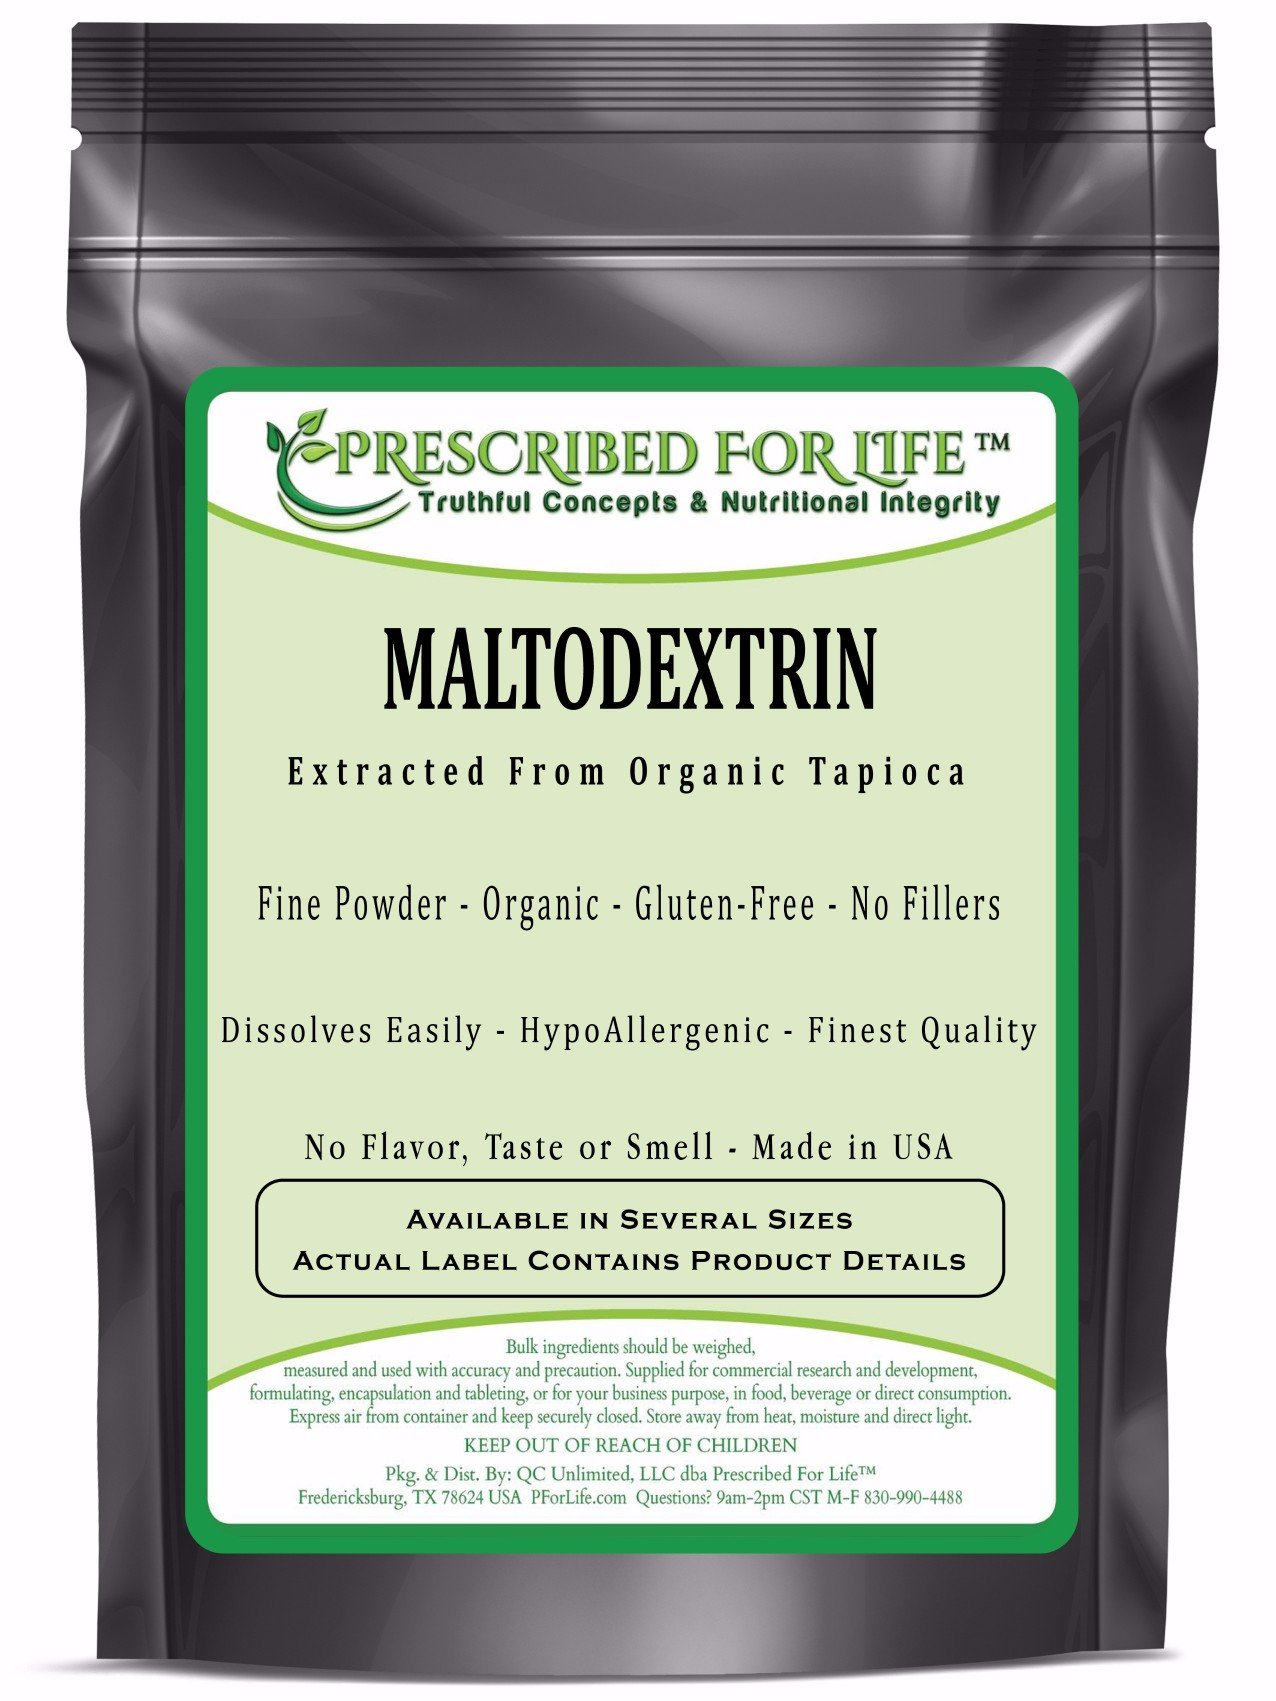 Maltodextrin - Pure Tapioca Quick Dissolving Natural Starch - ING: Organic Powder, 10 kg by Prescribed For Life (Image #1)